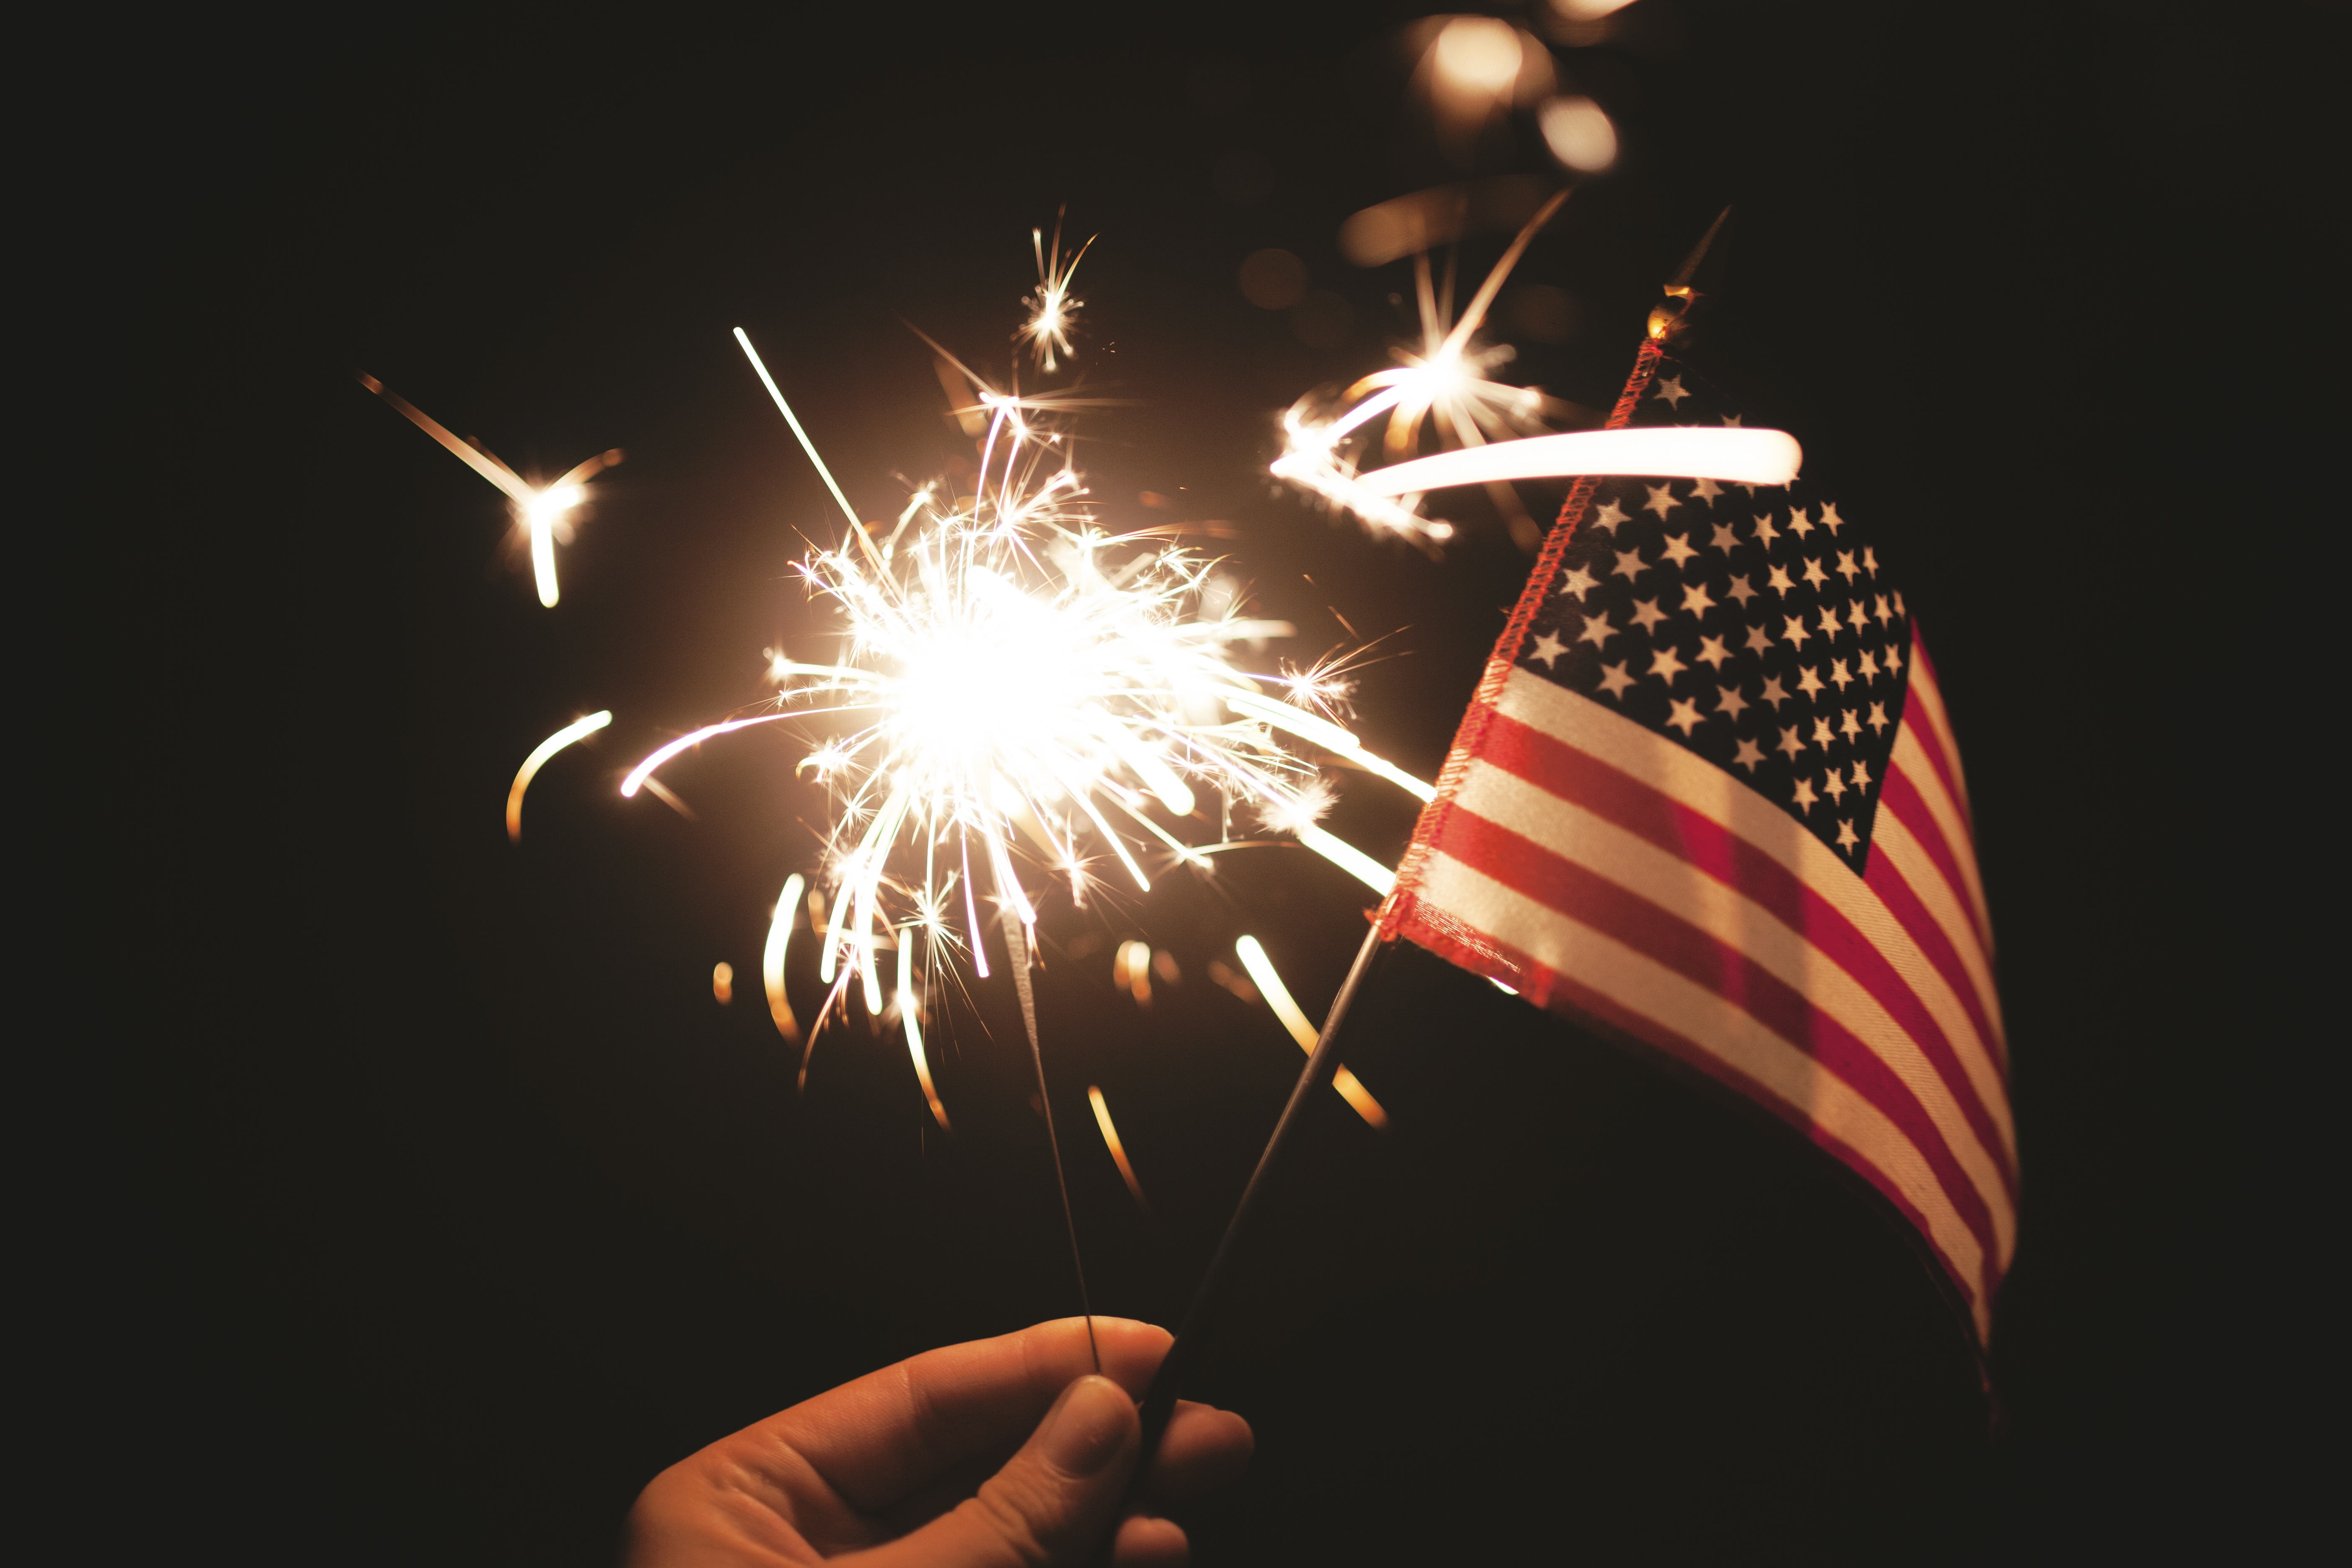 July 4th is America's birthday and called Independence Day